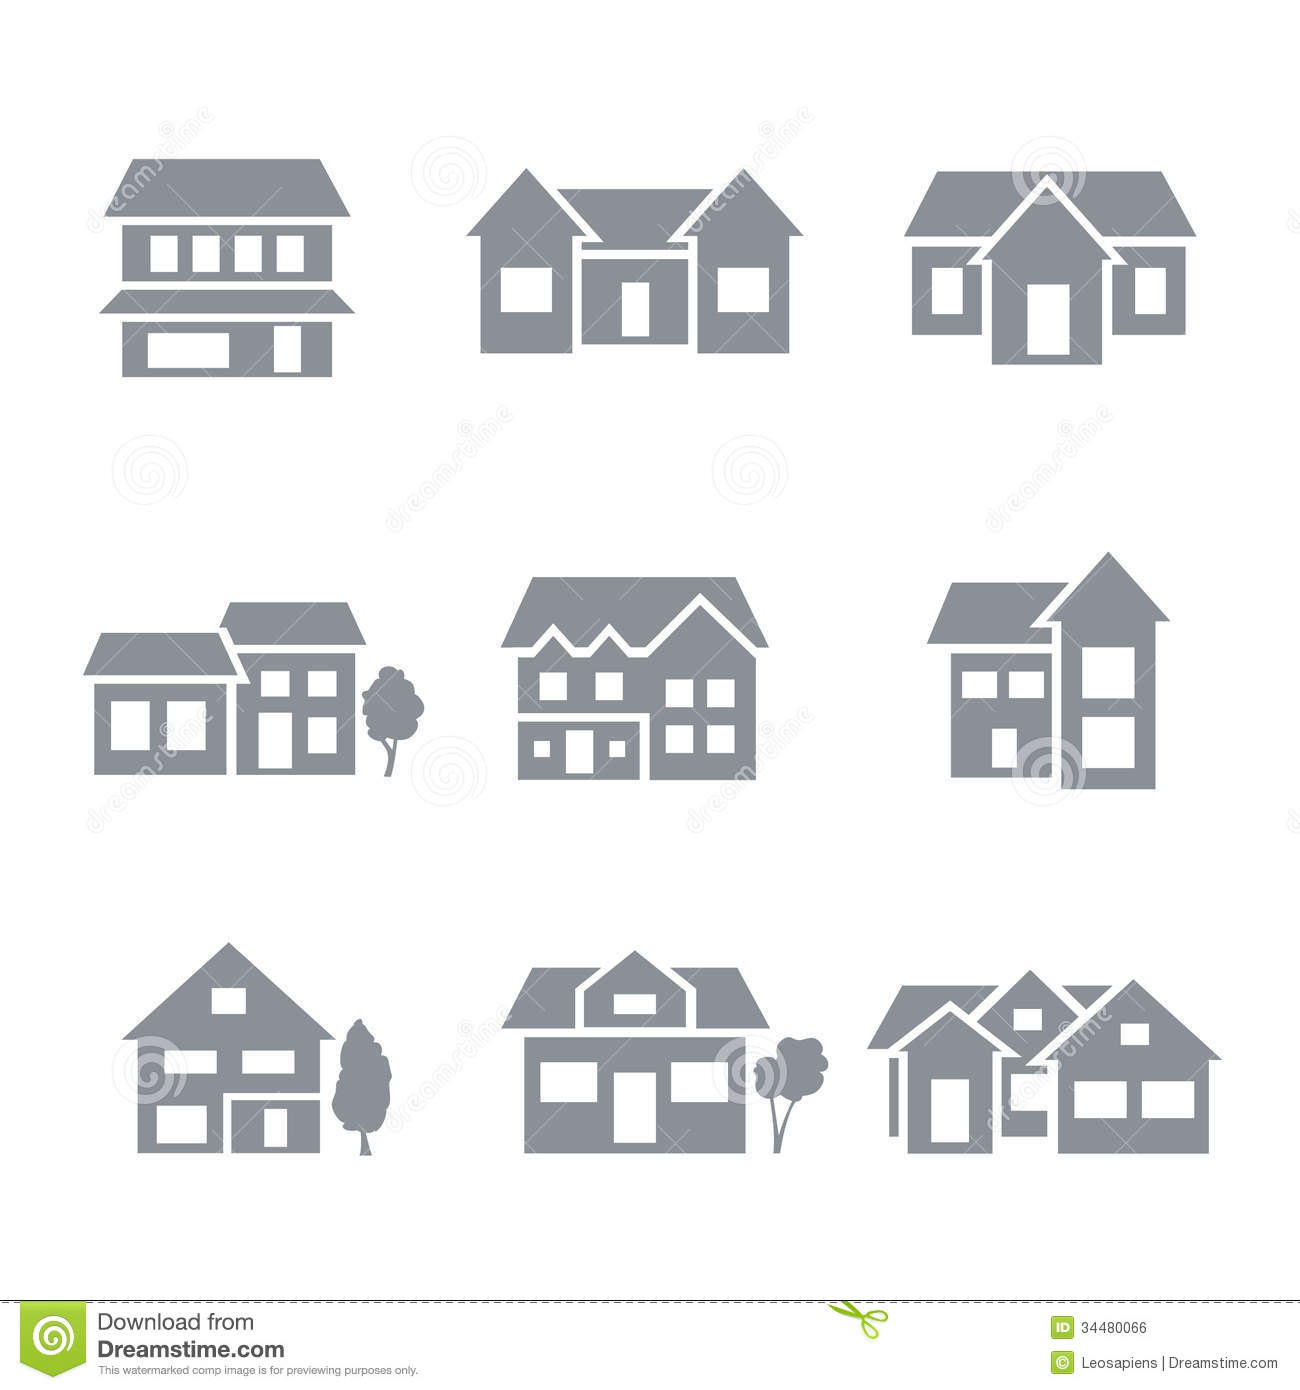 Residential Building Icons Free